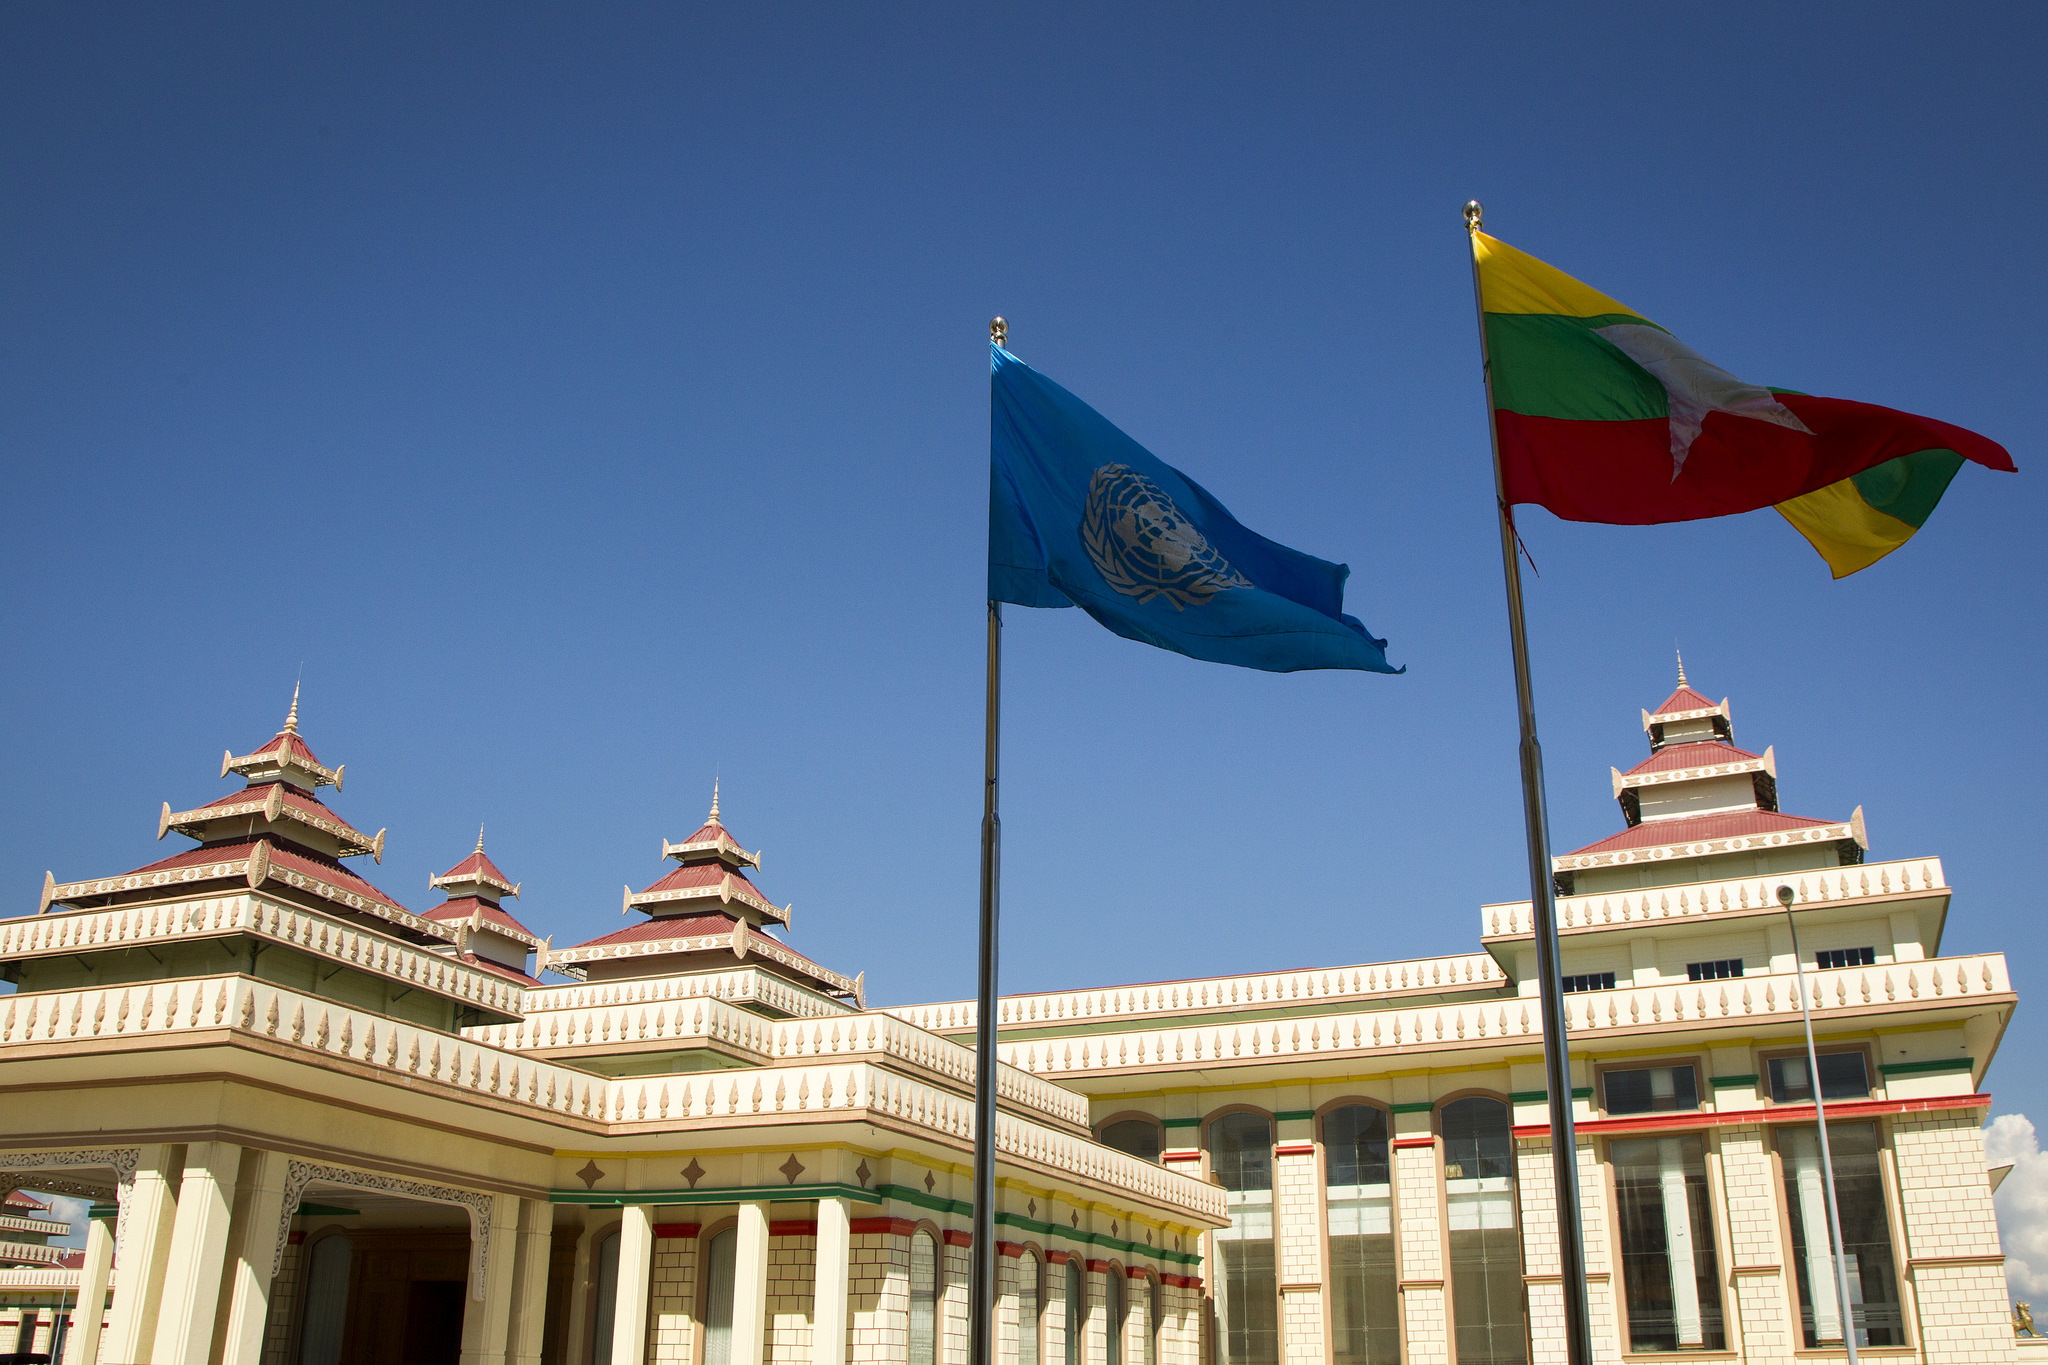 Parliament Building of Myanmar. Photo taken by UN Photo/Rick Bajornas on 13 November 2014.  (CC BY-NC-ND 2.0)